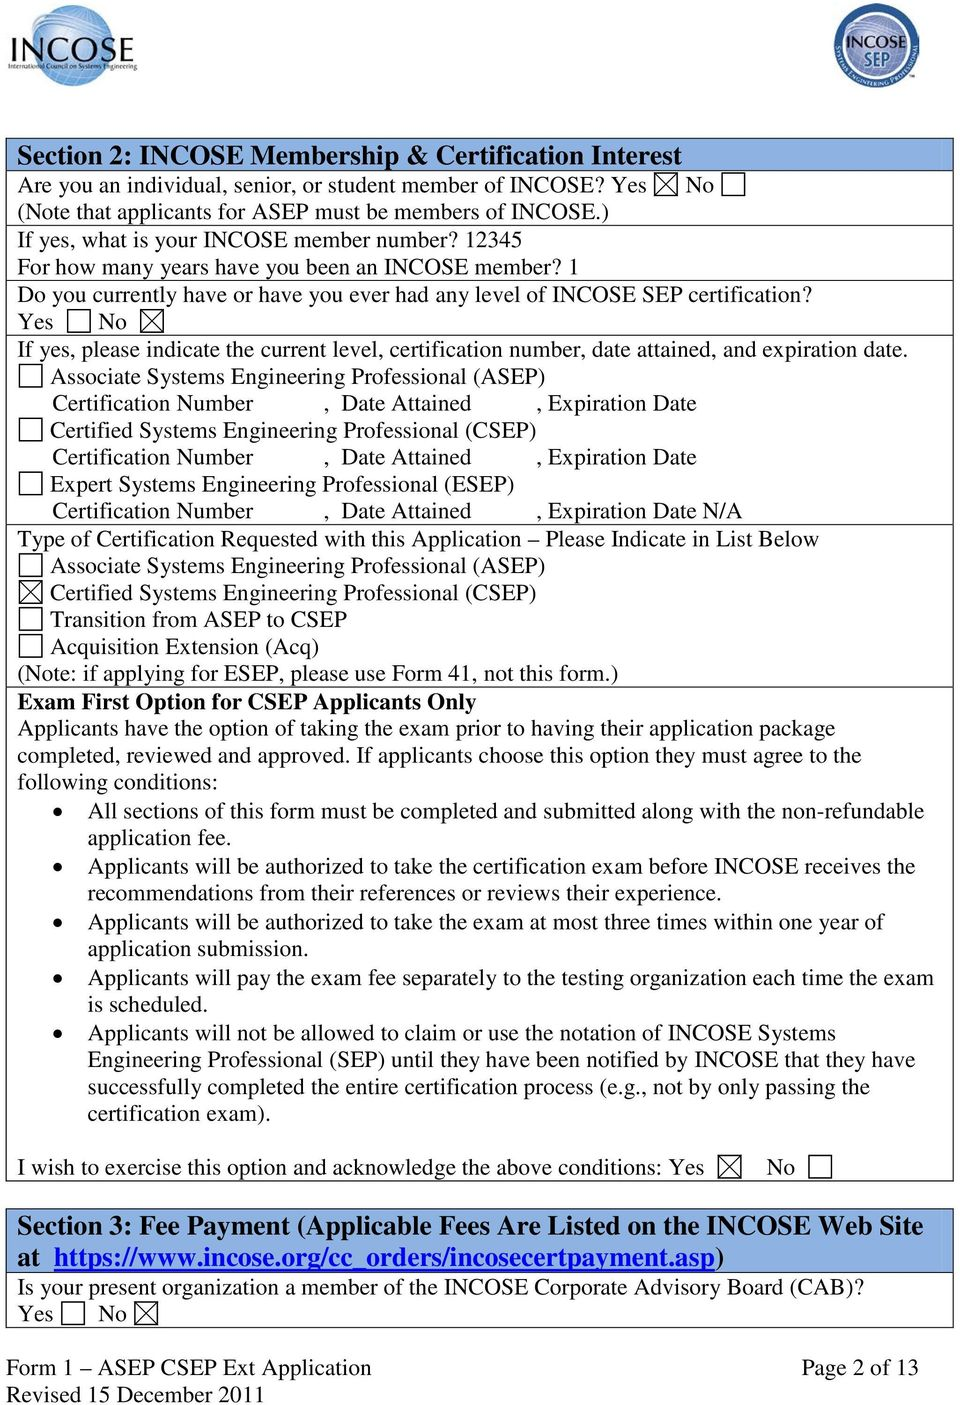 Form 1 Application For Incose Asep Csep And Extensions Pdf